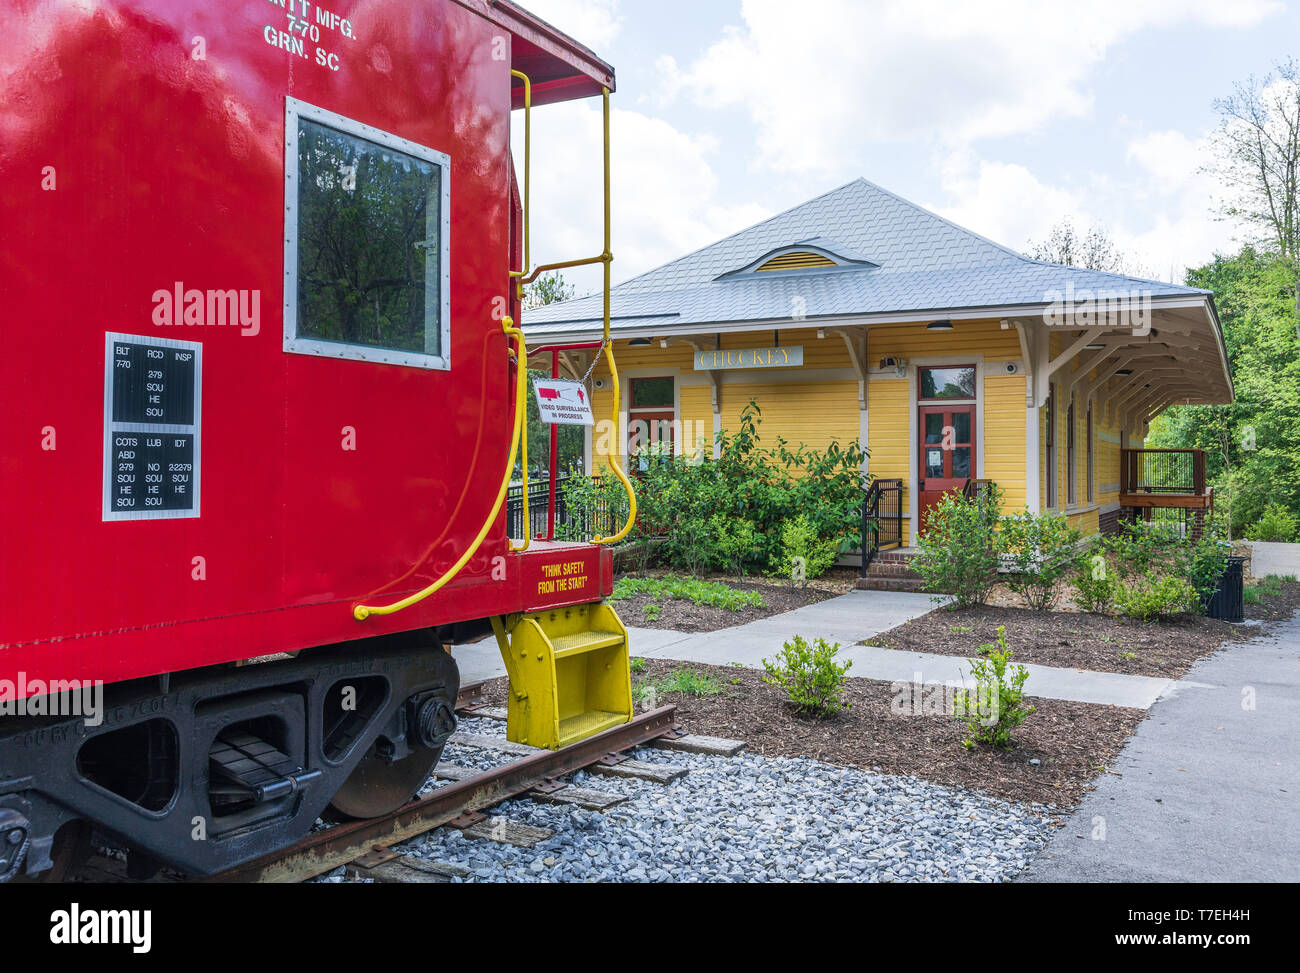 JONESBOROUGH, TN, USA-4/28/19: The museum in the old Chuckey train depot stands in Rowe Park, along with a red caboose. - Stock Image